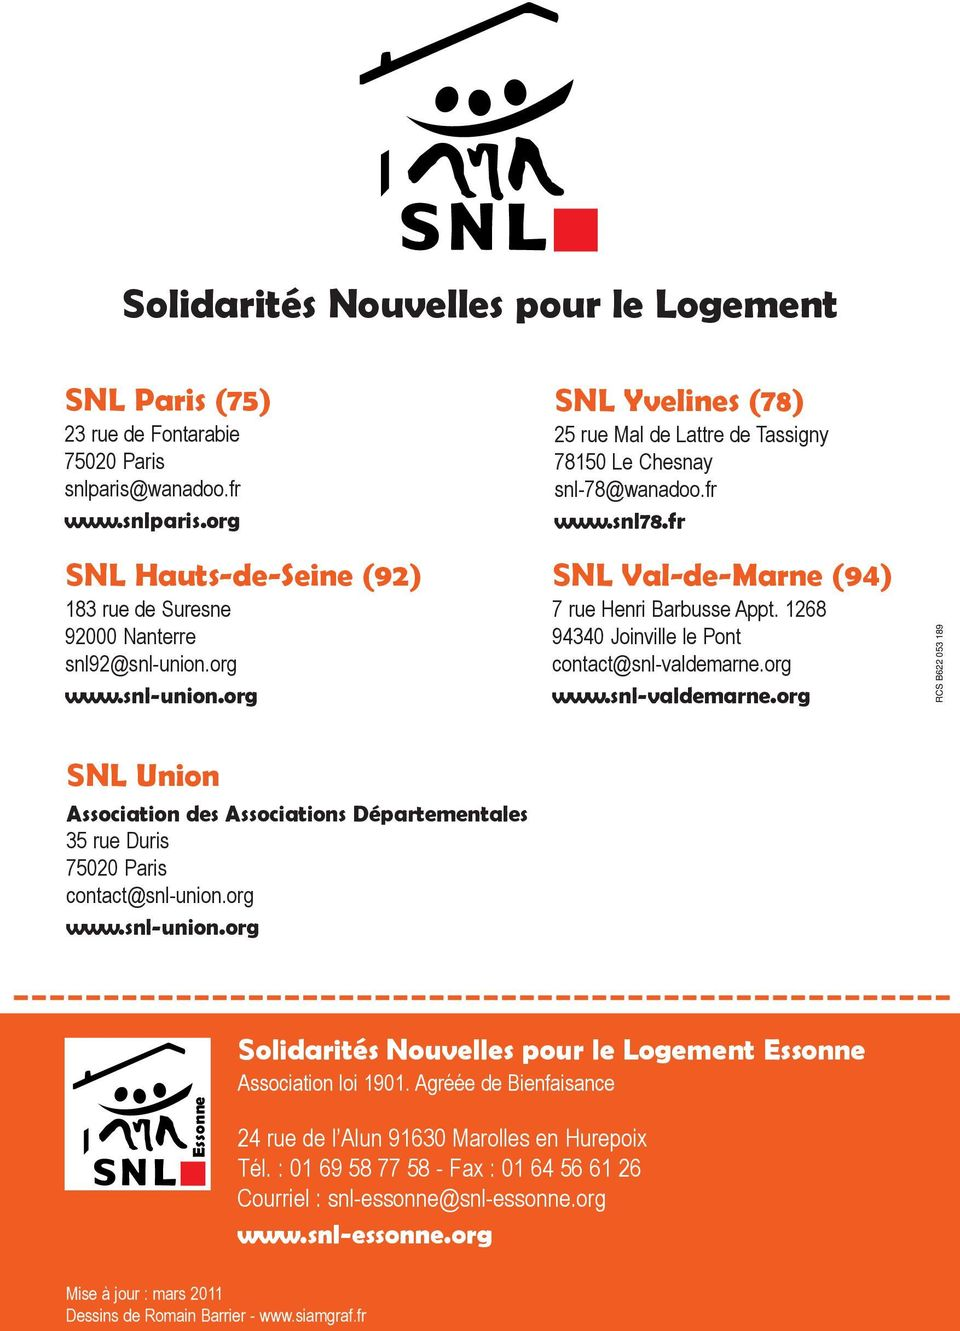 1268 94340 Joinville le Pont contact@snl-valdemarne.org www.snl-valdemarne.org SNL Union Association des Associations Départementales 35 rue Duris 75020 Paris contact@snl-union.